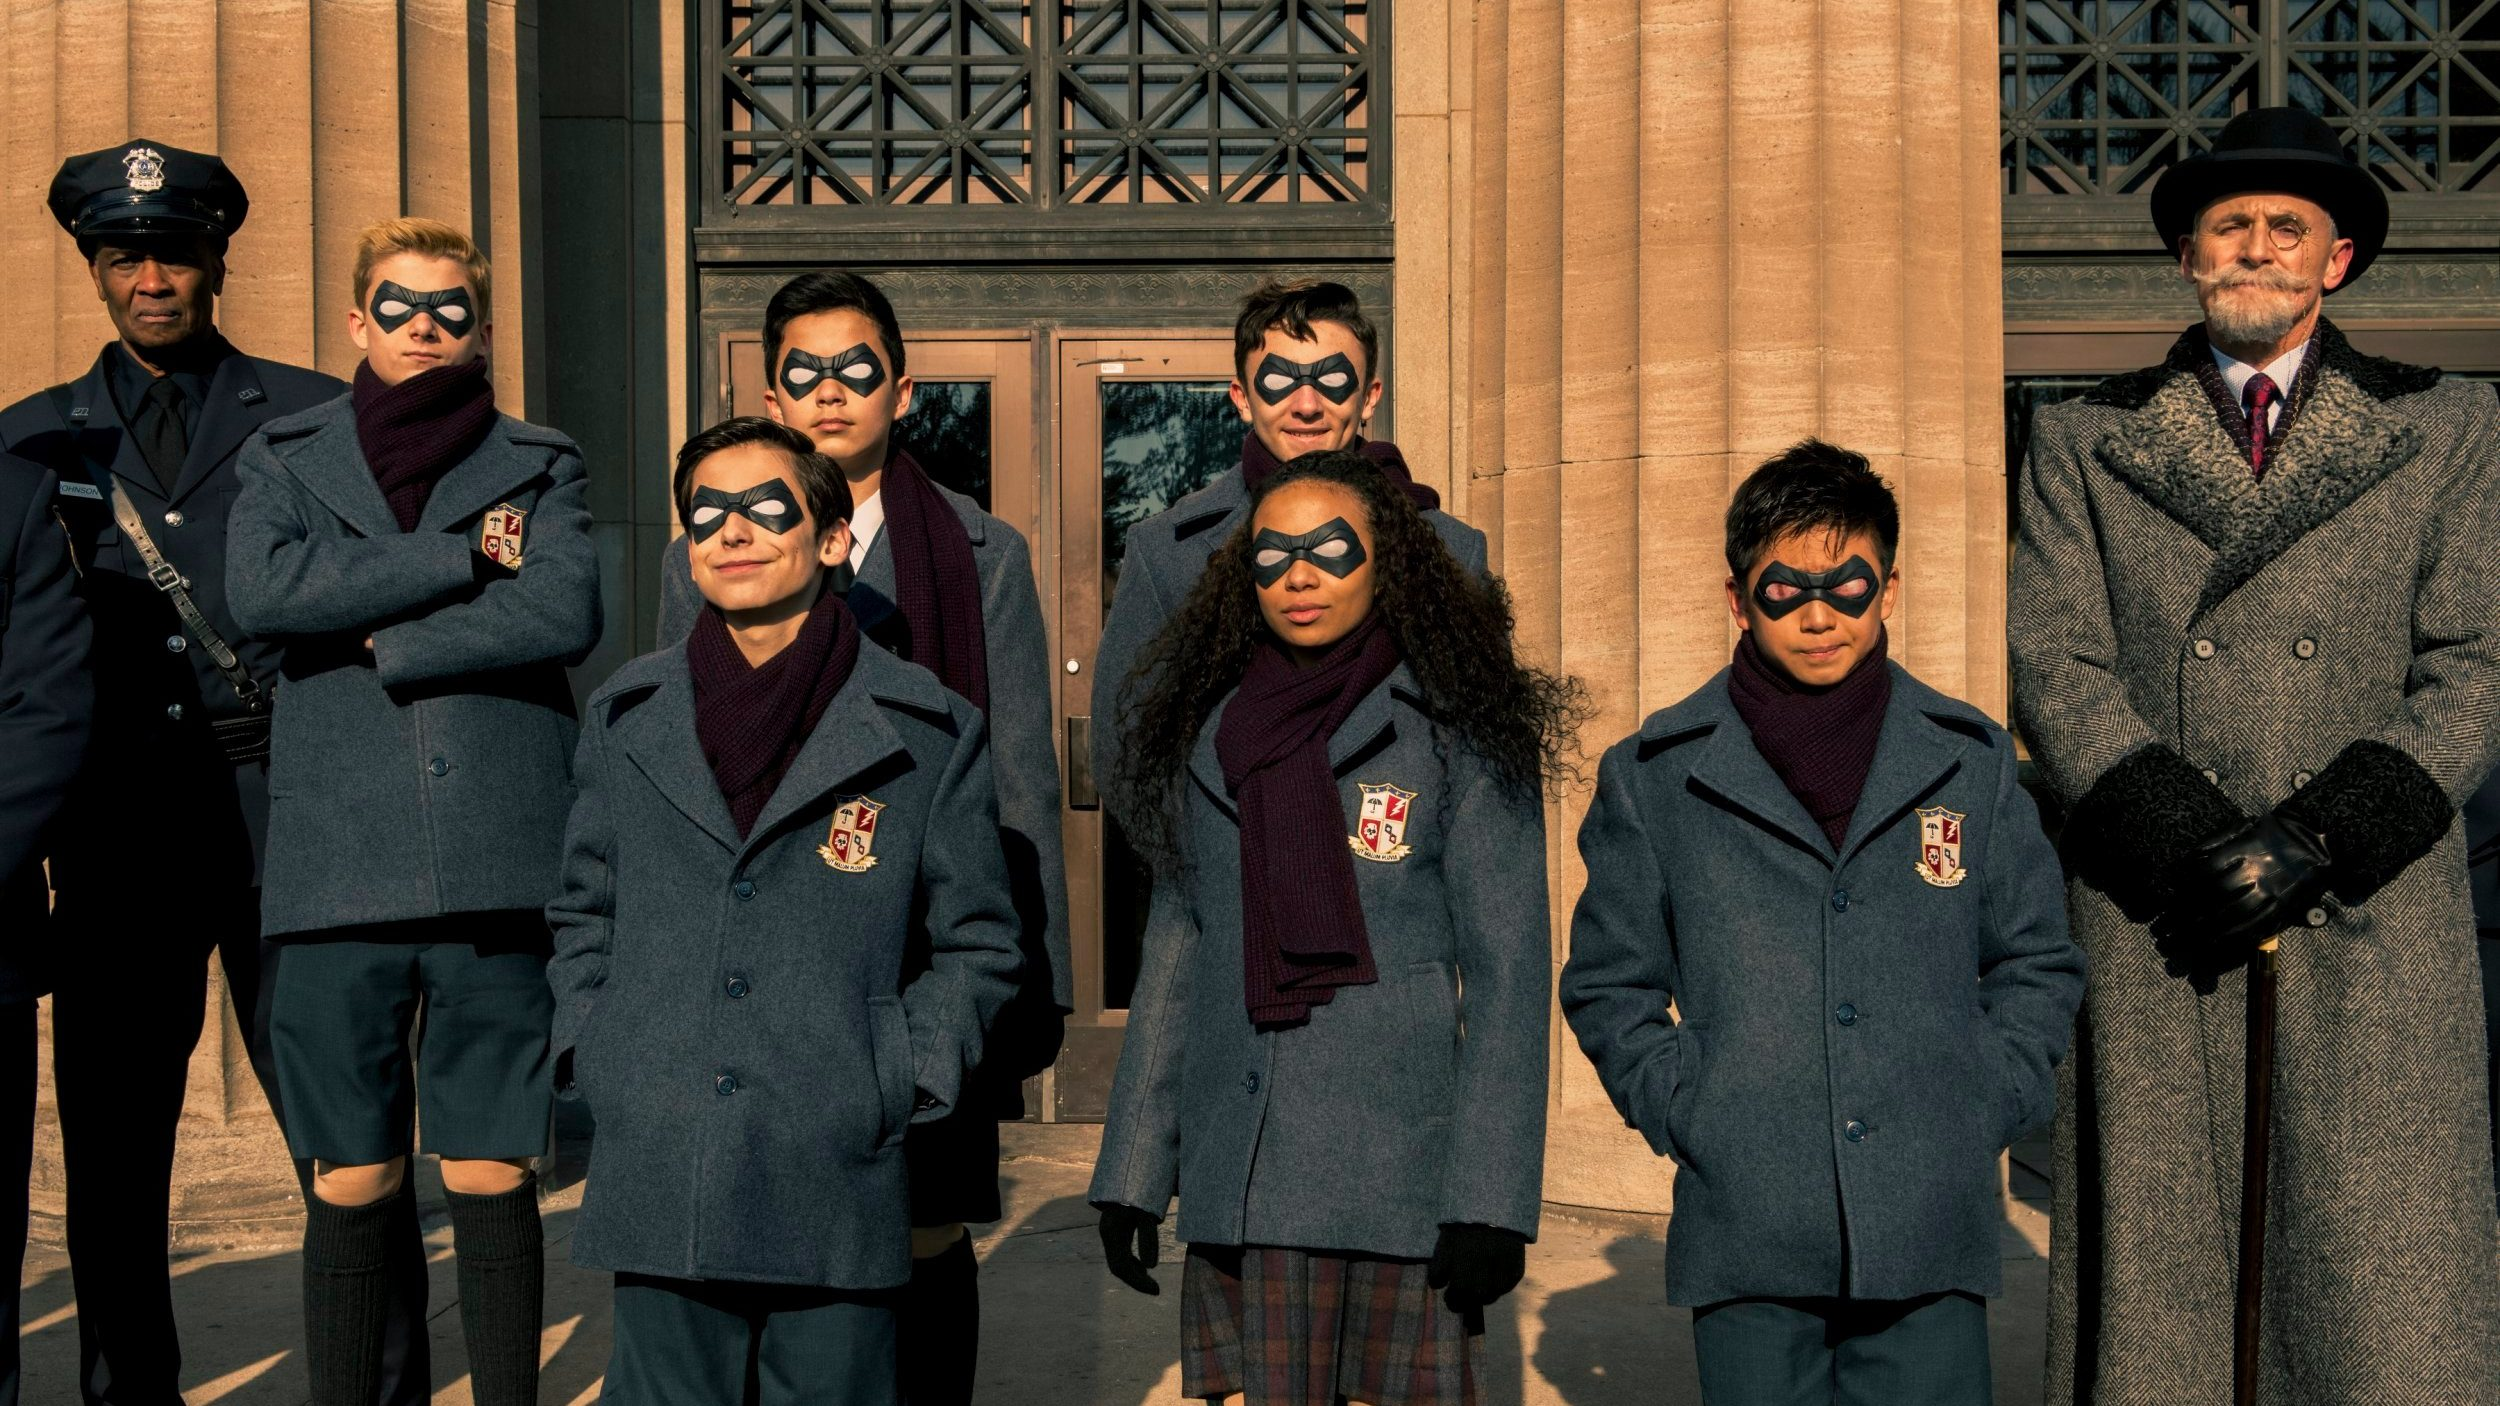 The Umbrella Academy season 2 spoilers release date